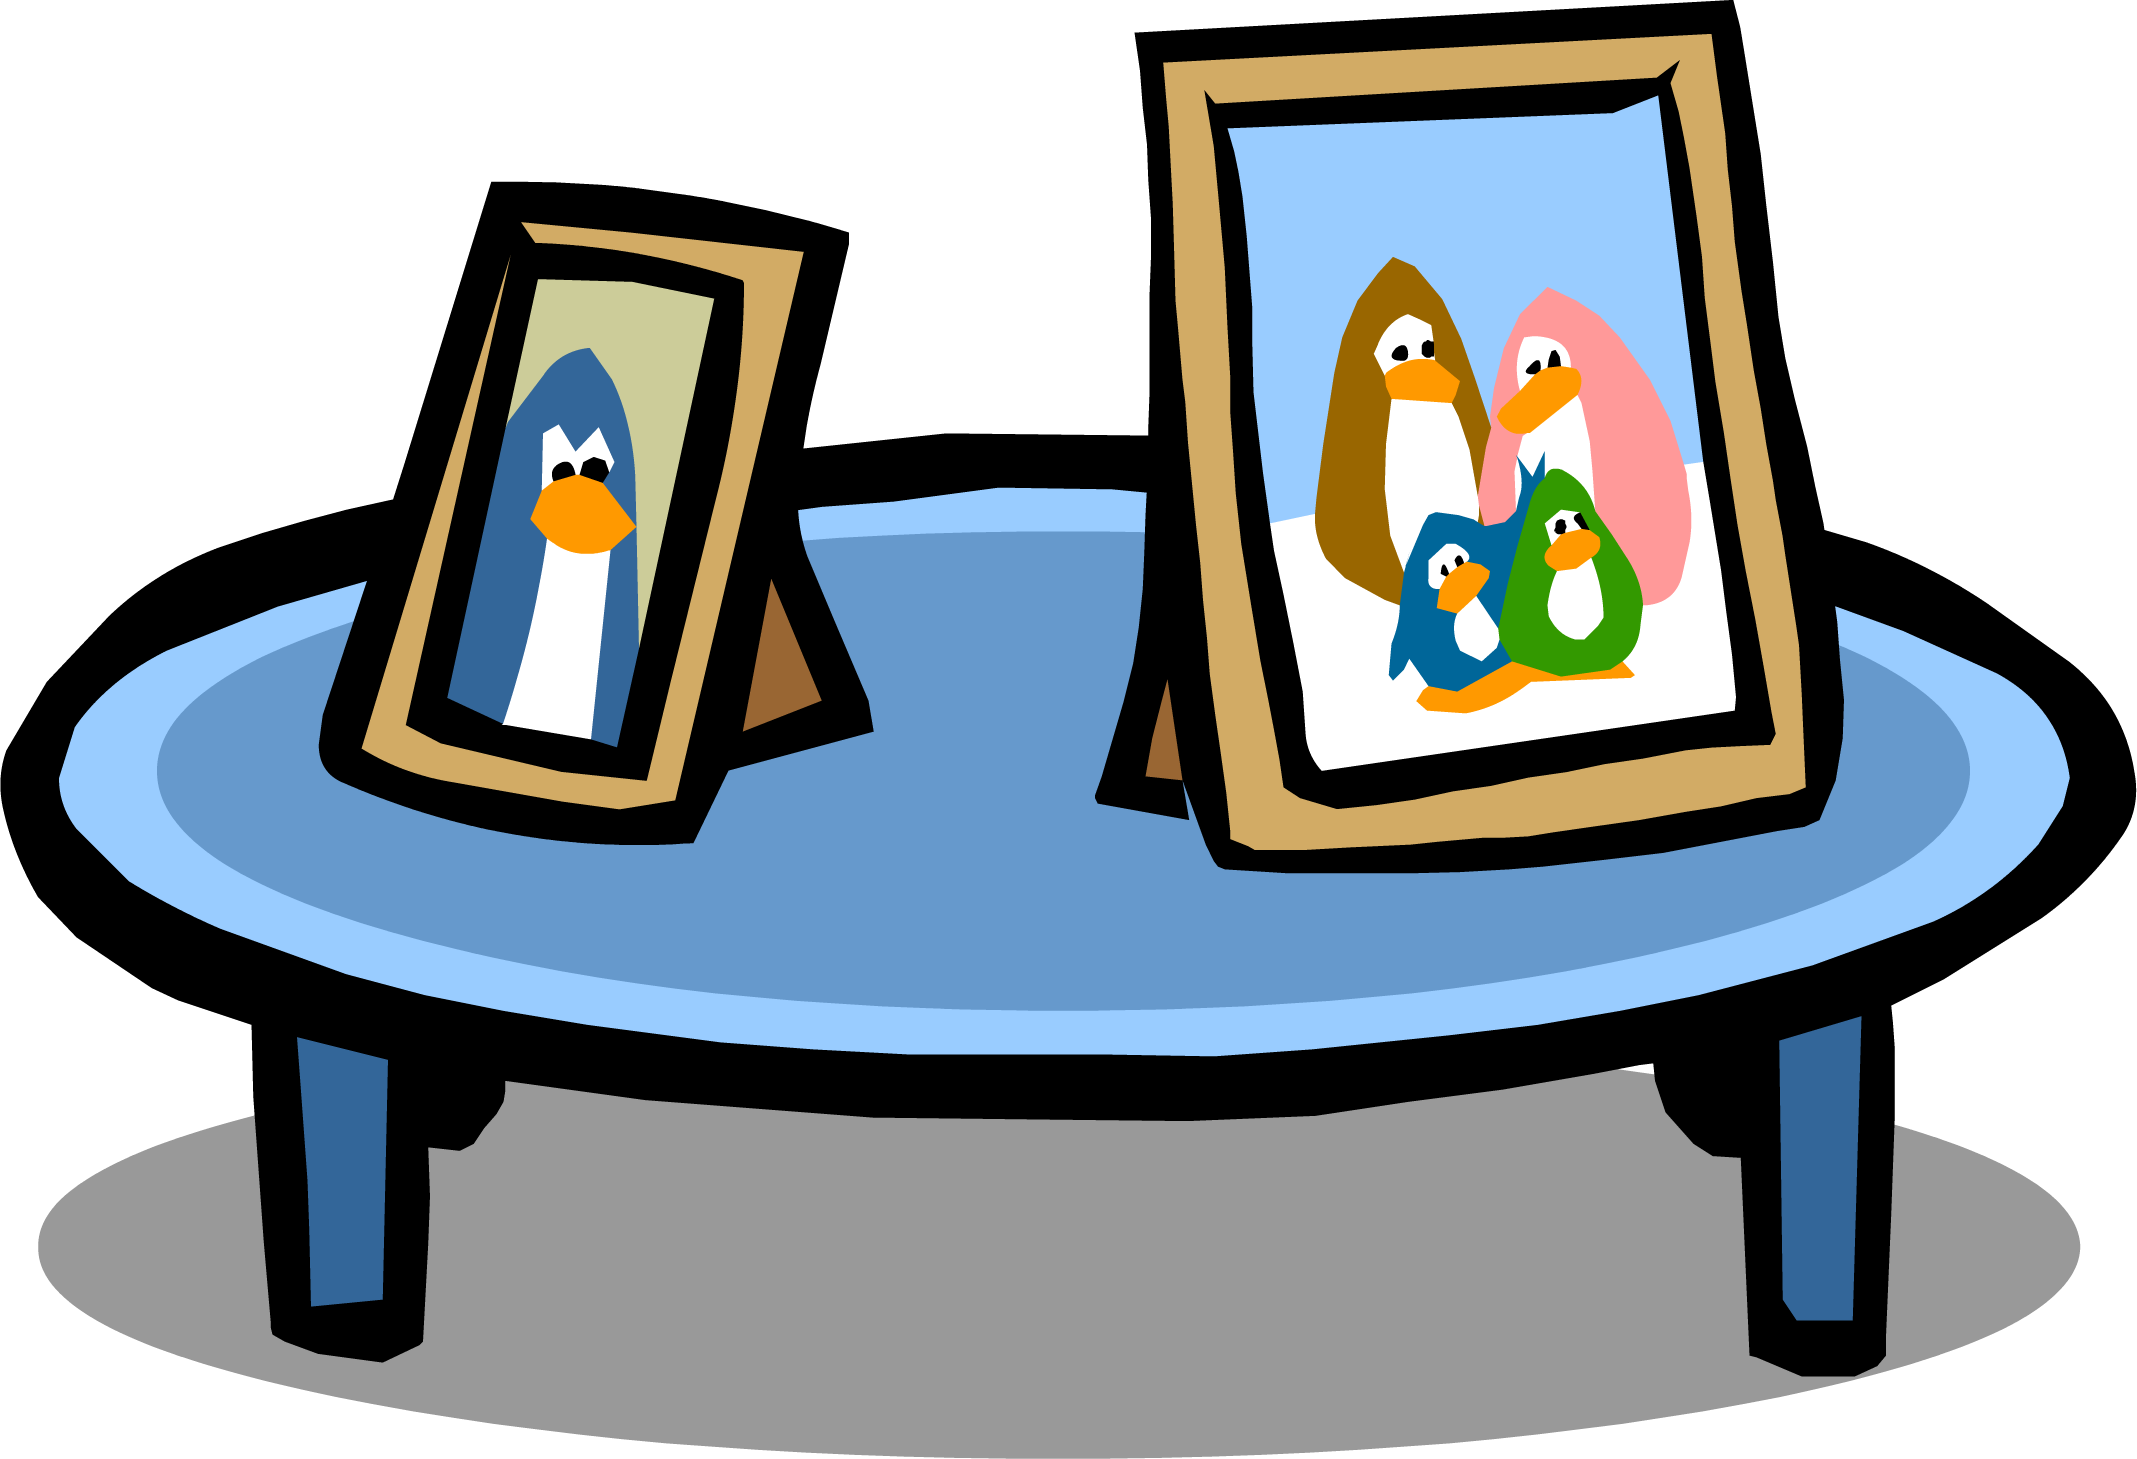 Clipart table blue table. Image sprite png club